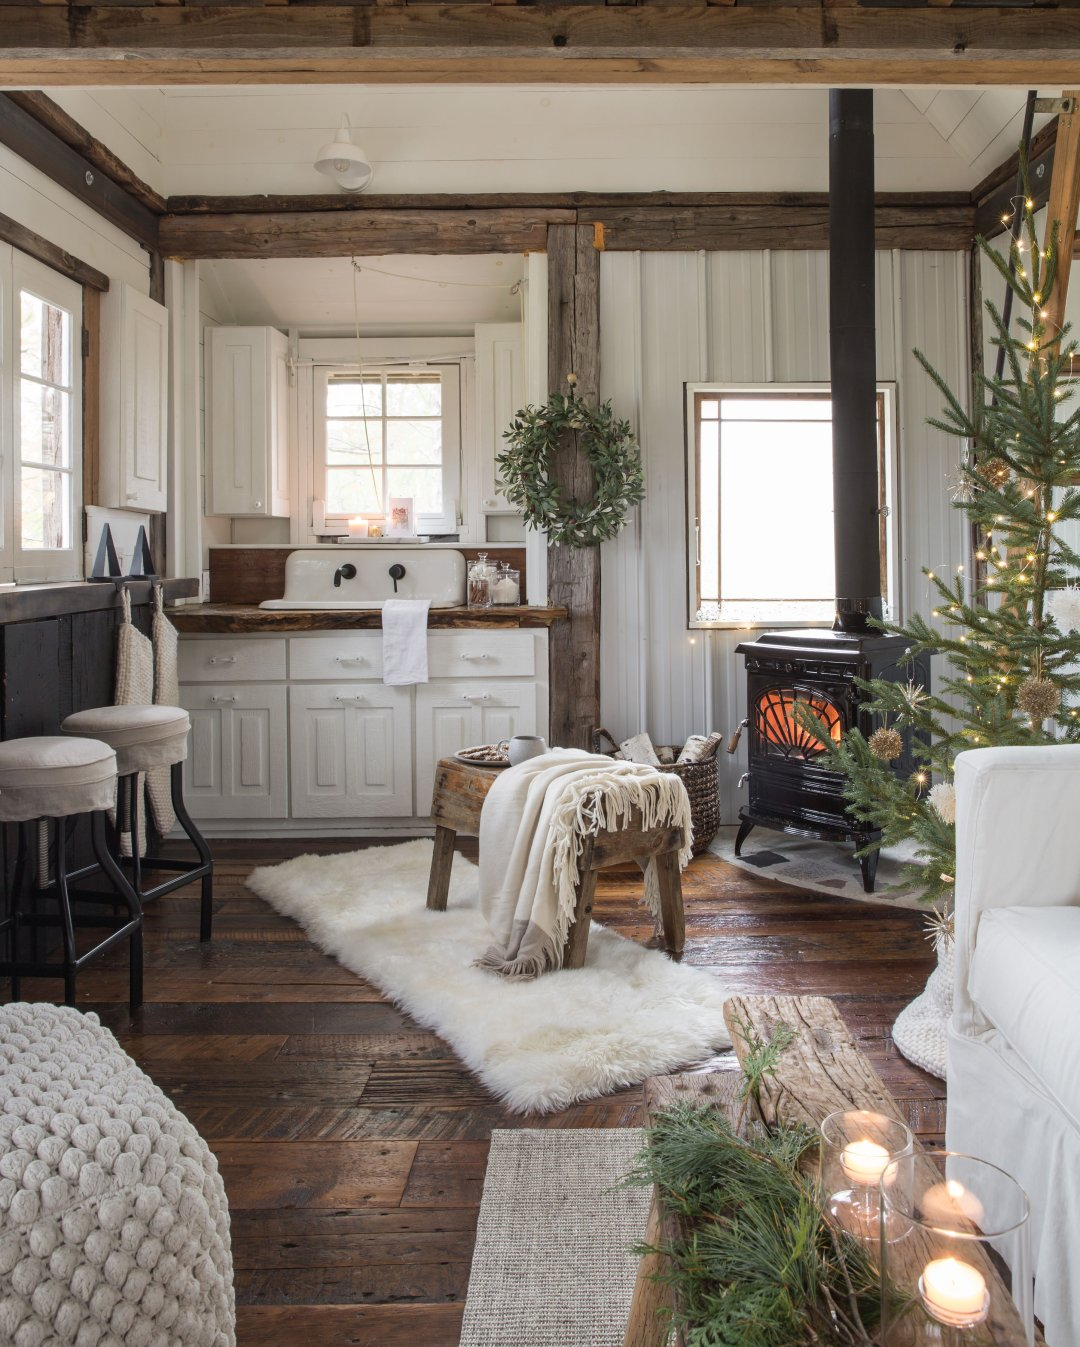 35 Cozy Home Interior Design Ideas: 10 Cozy Holiday Decorating Ideas For Small Spaces